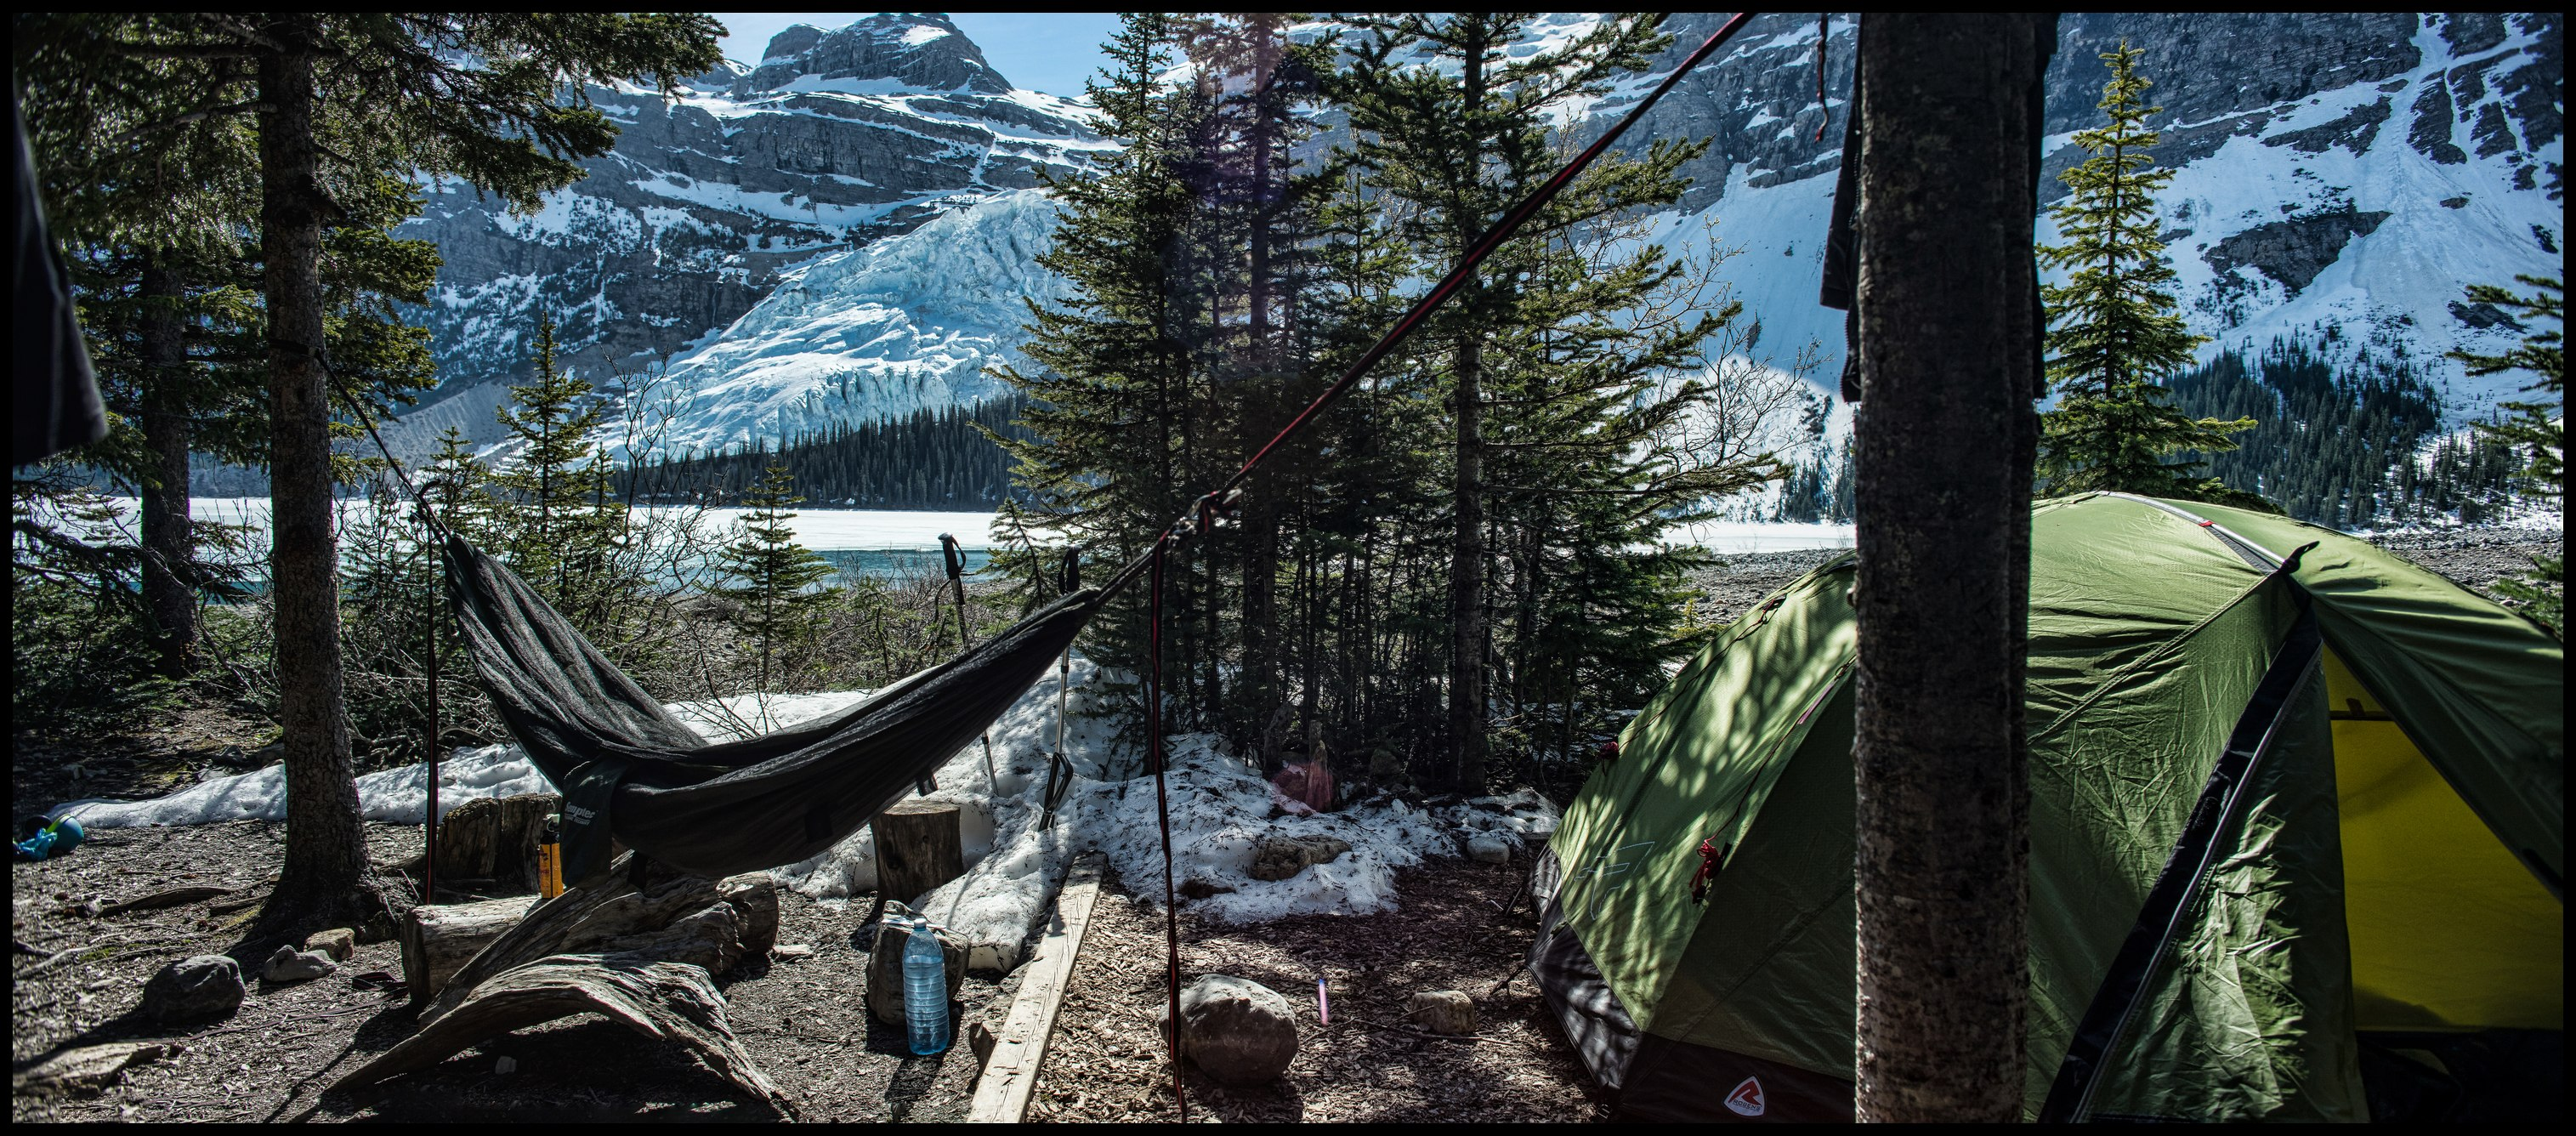 Berg Lake / Marmot campsite panorama, Sony A7 / Canon FD Tilt Shift 35 2.8